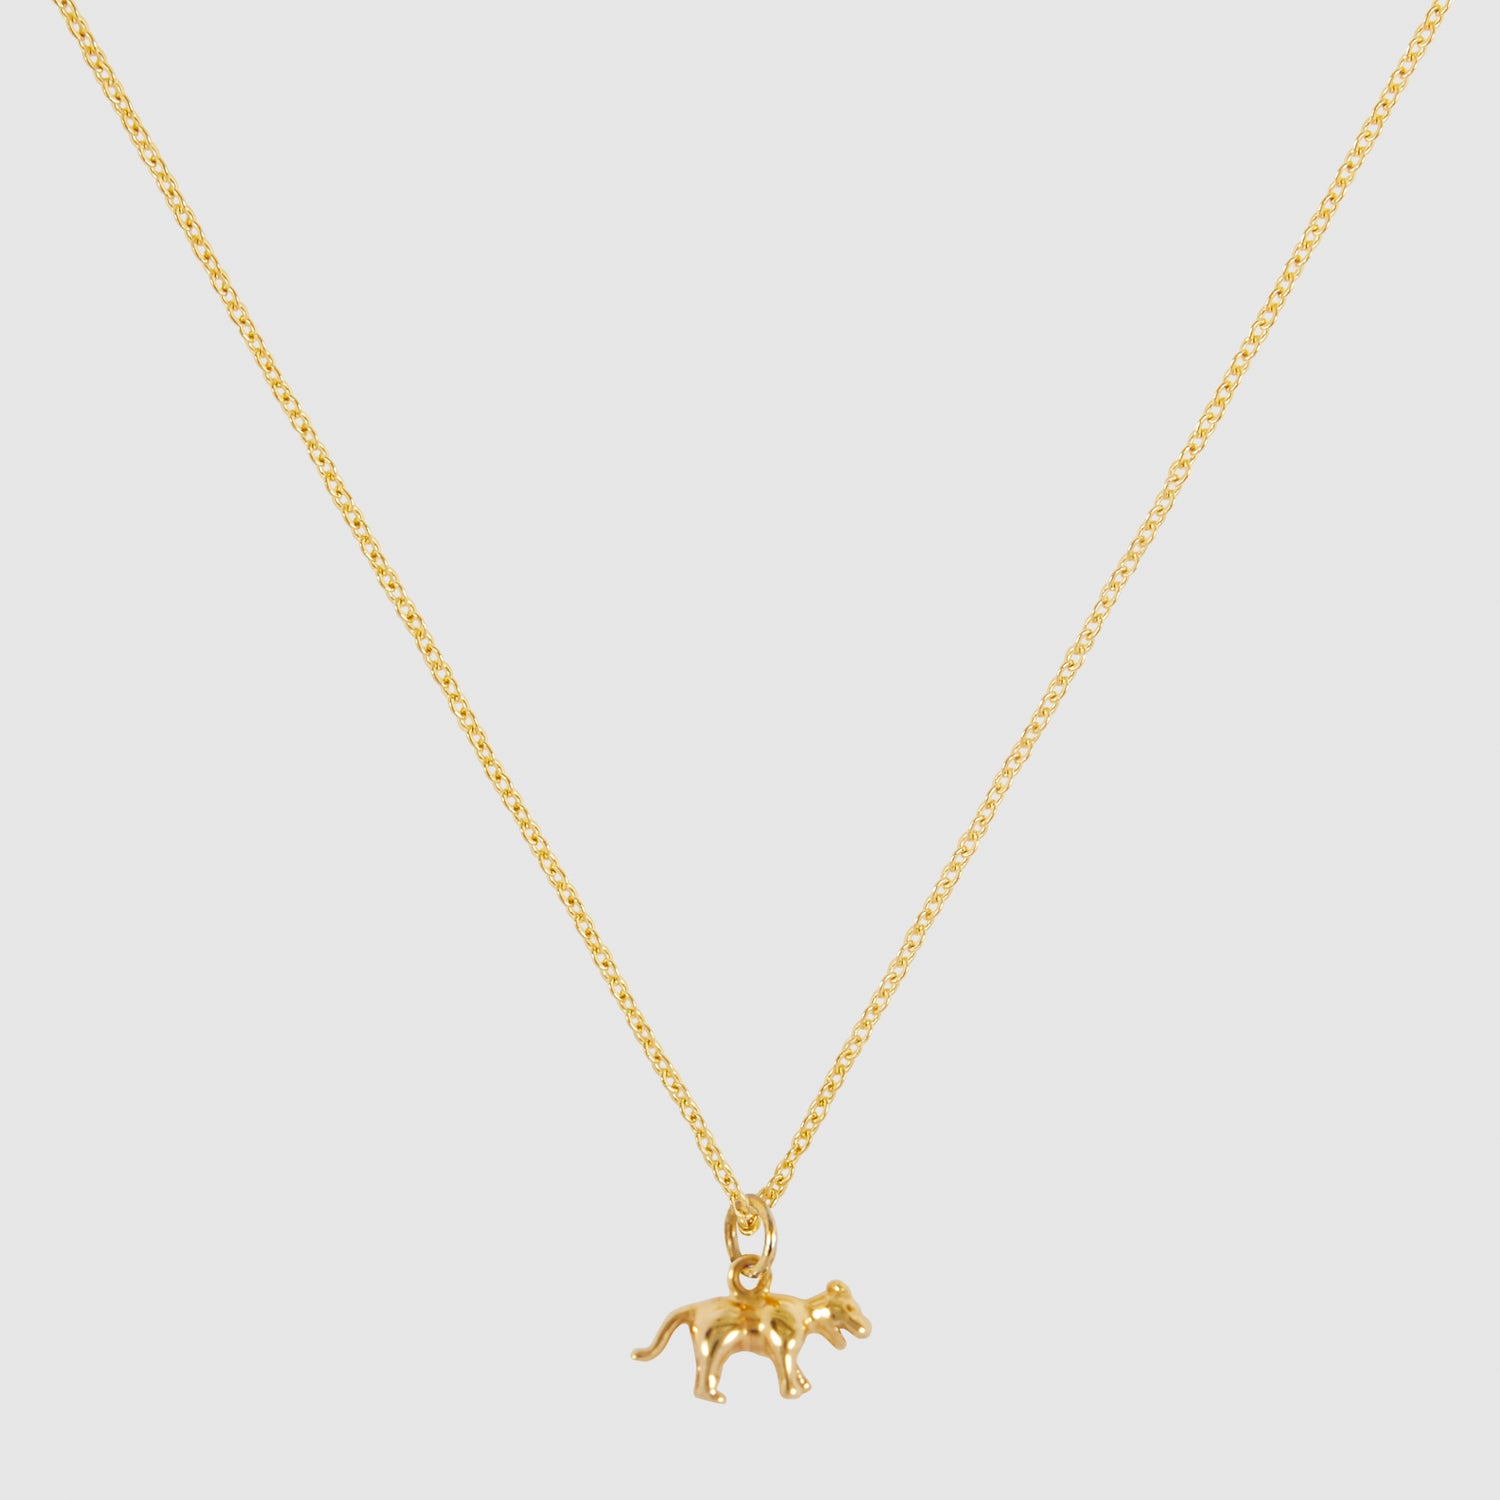 Tiny Tiger Necklace